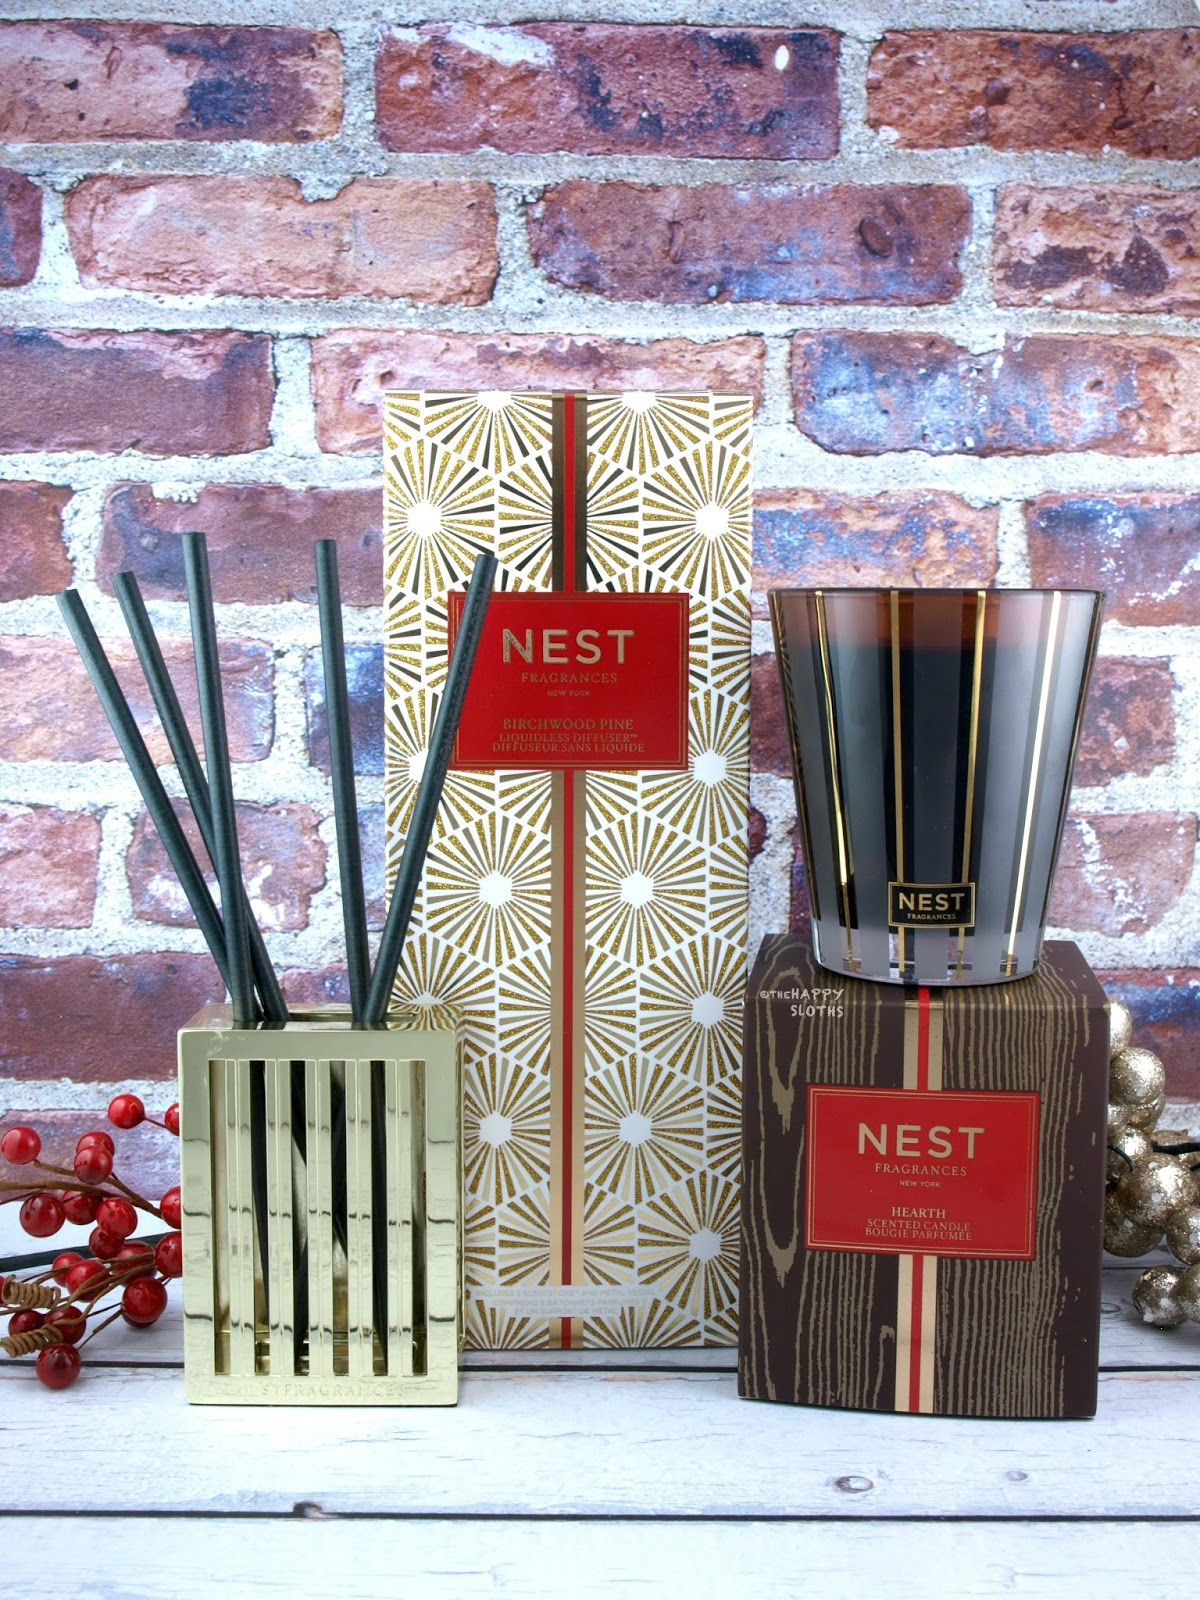 NEST Fragrances Birchwood Pine Liquidless Diffuser & Hearth Candle: Review